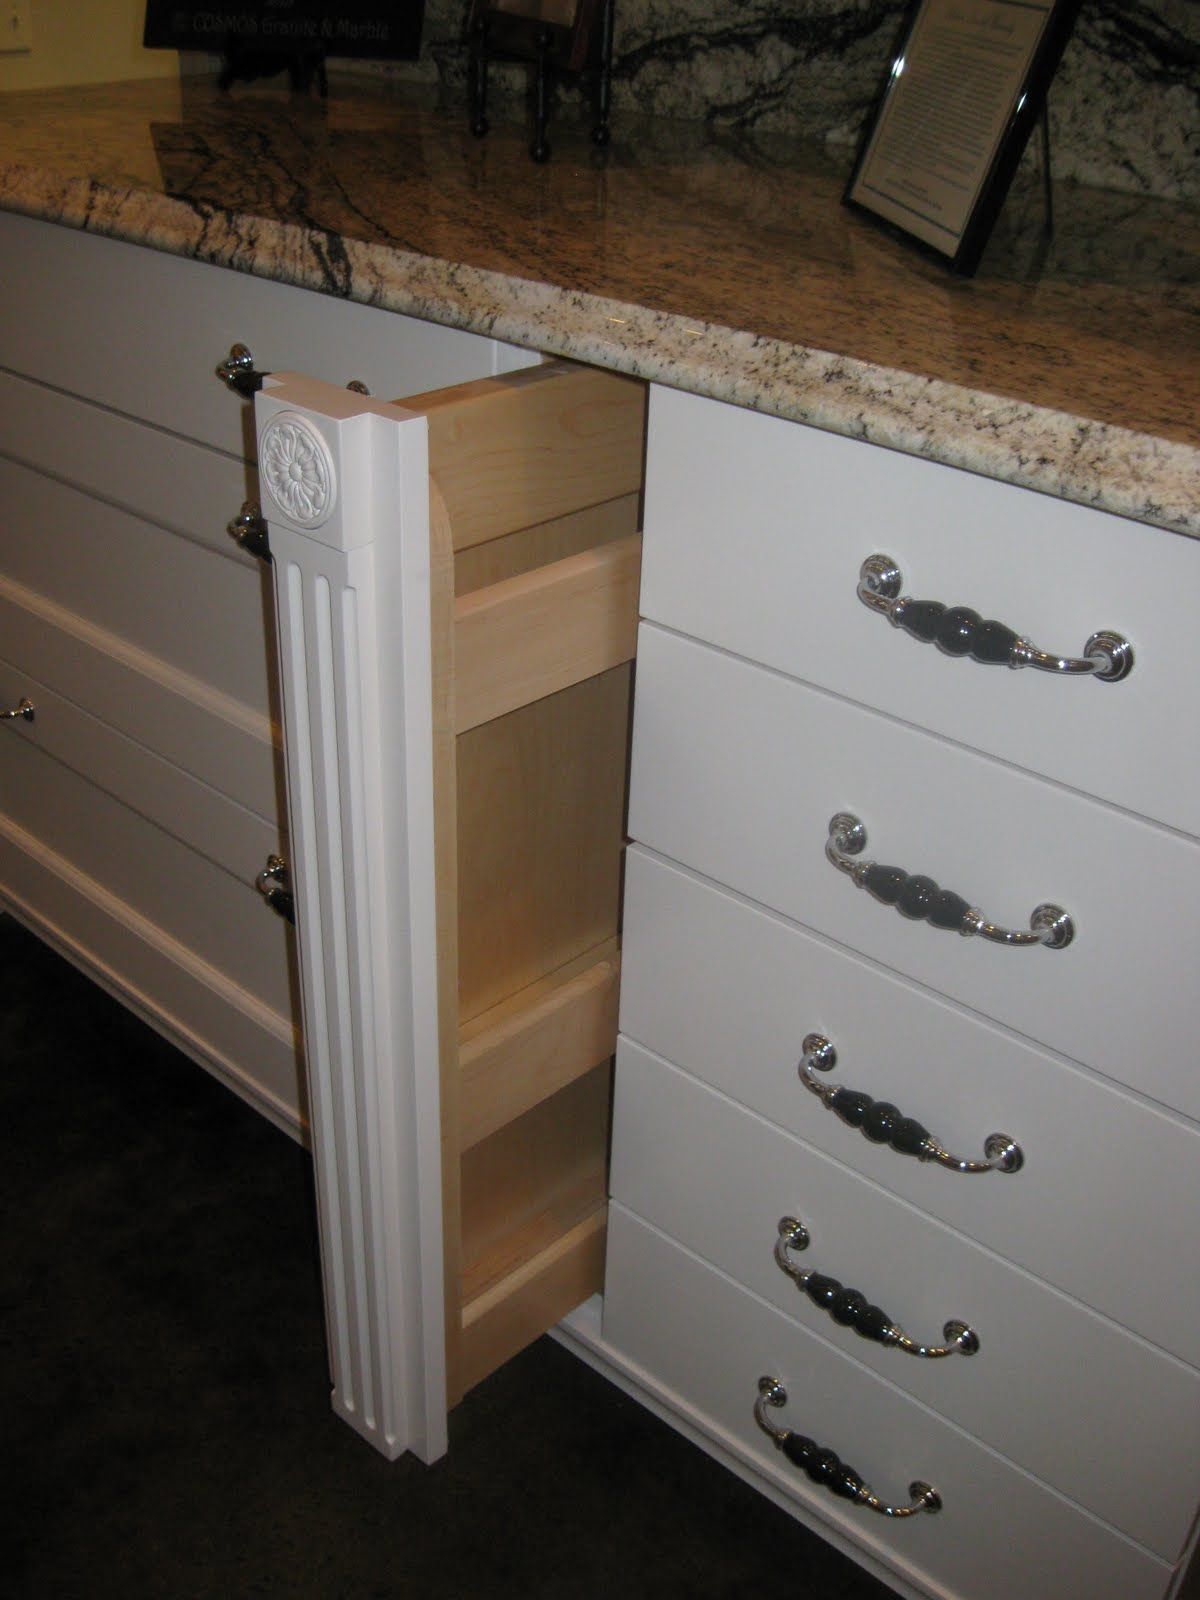 Cabinet Design Hidden Compartments